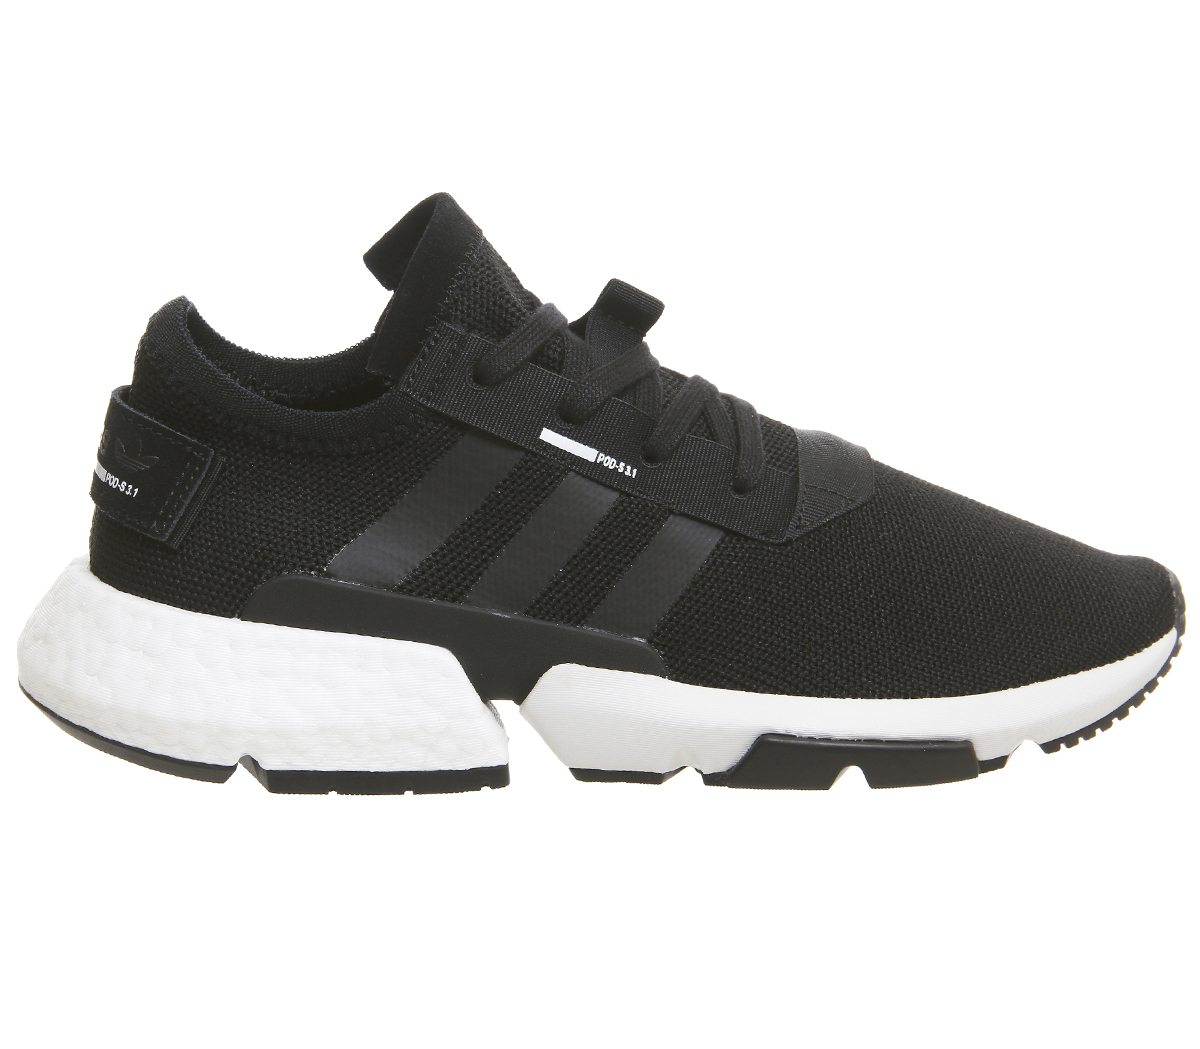 Adidas Pod S3.1 Trainers Black White Trainers Shoes   eBay c4ded7a29046